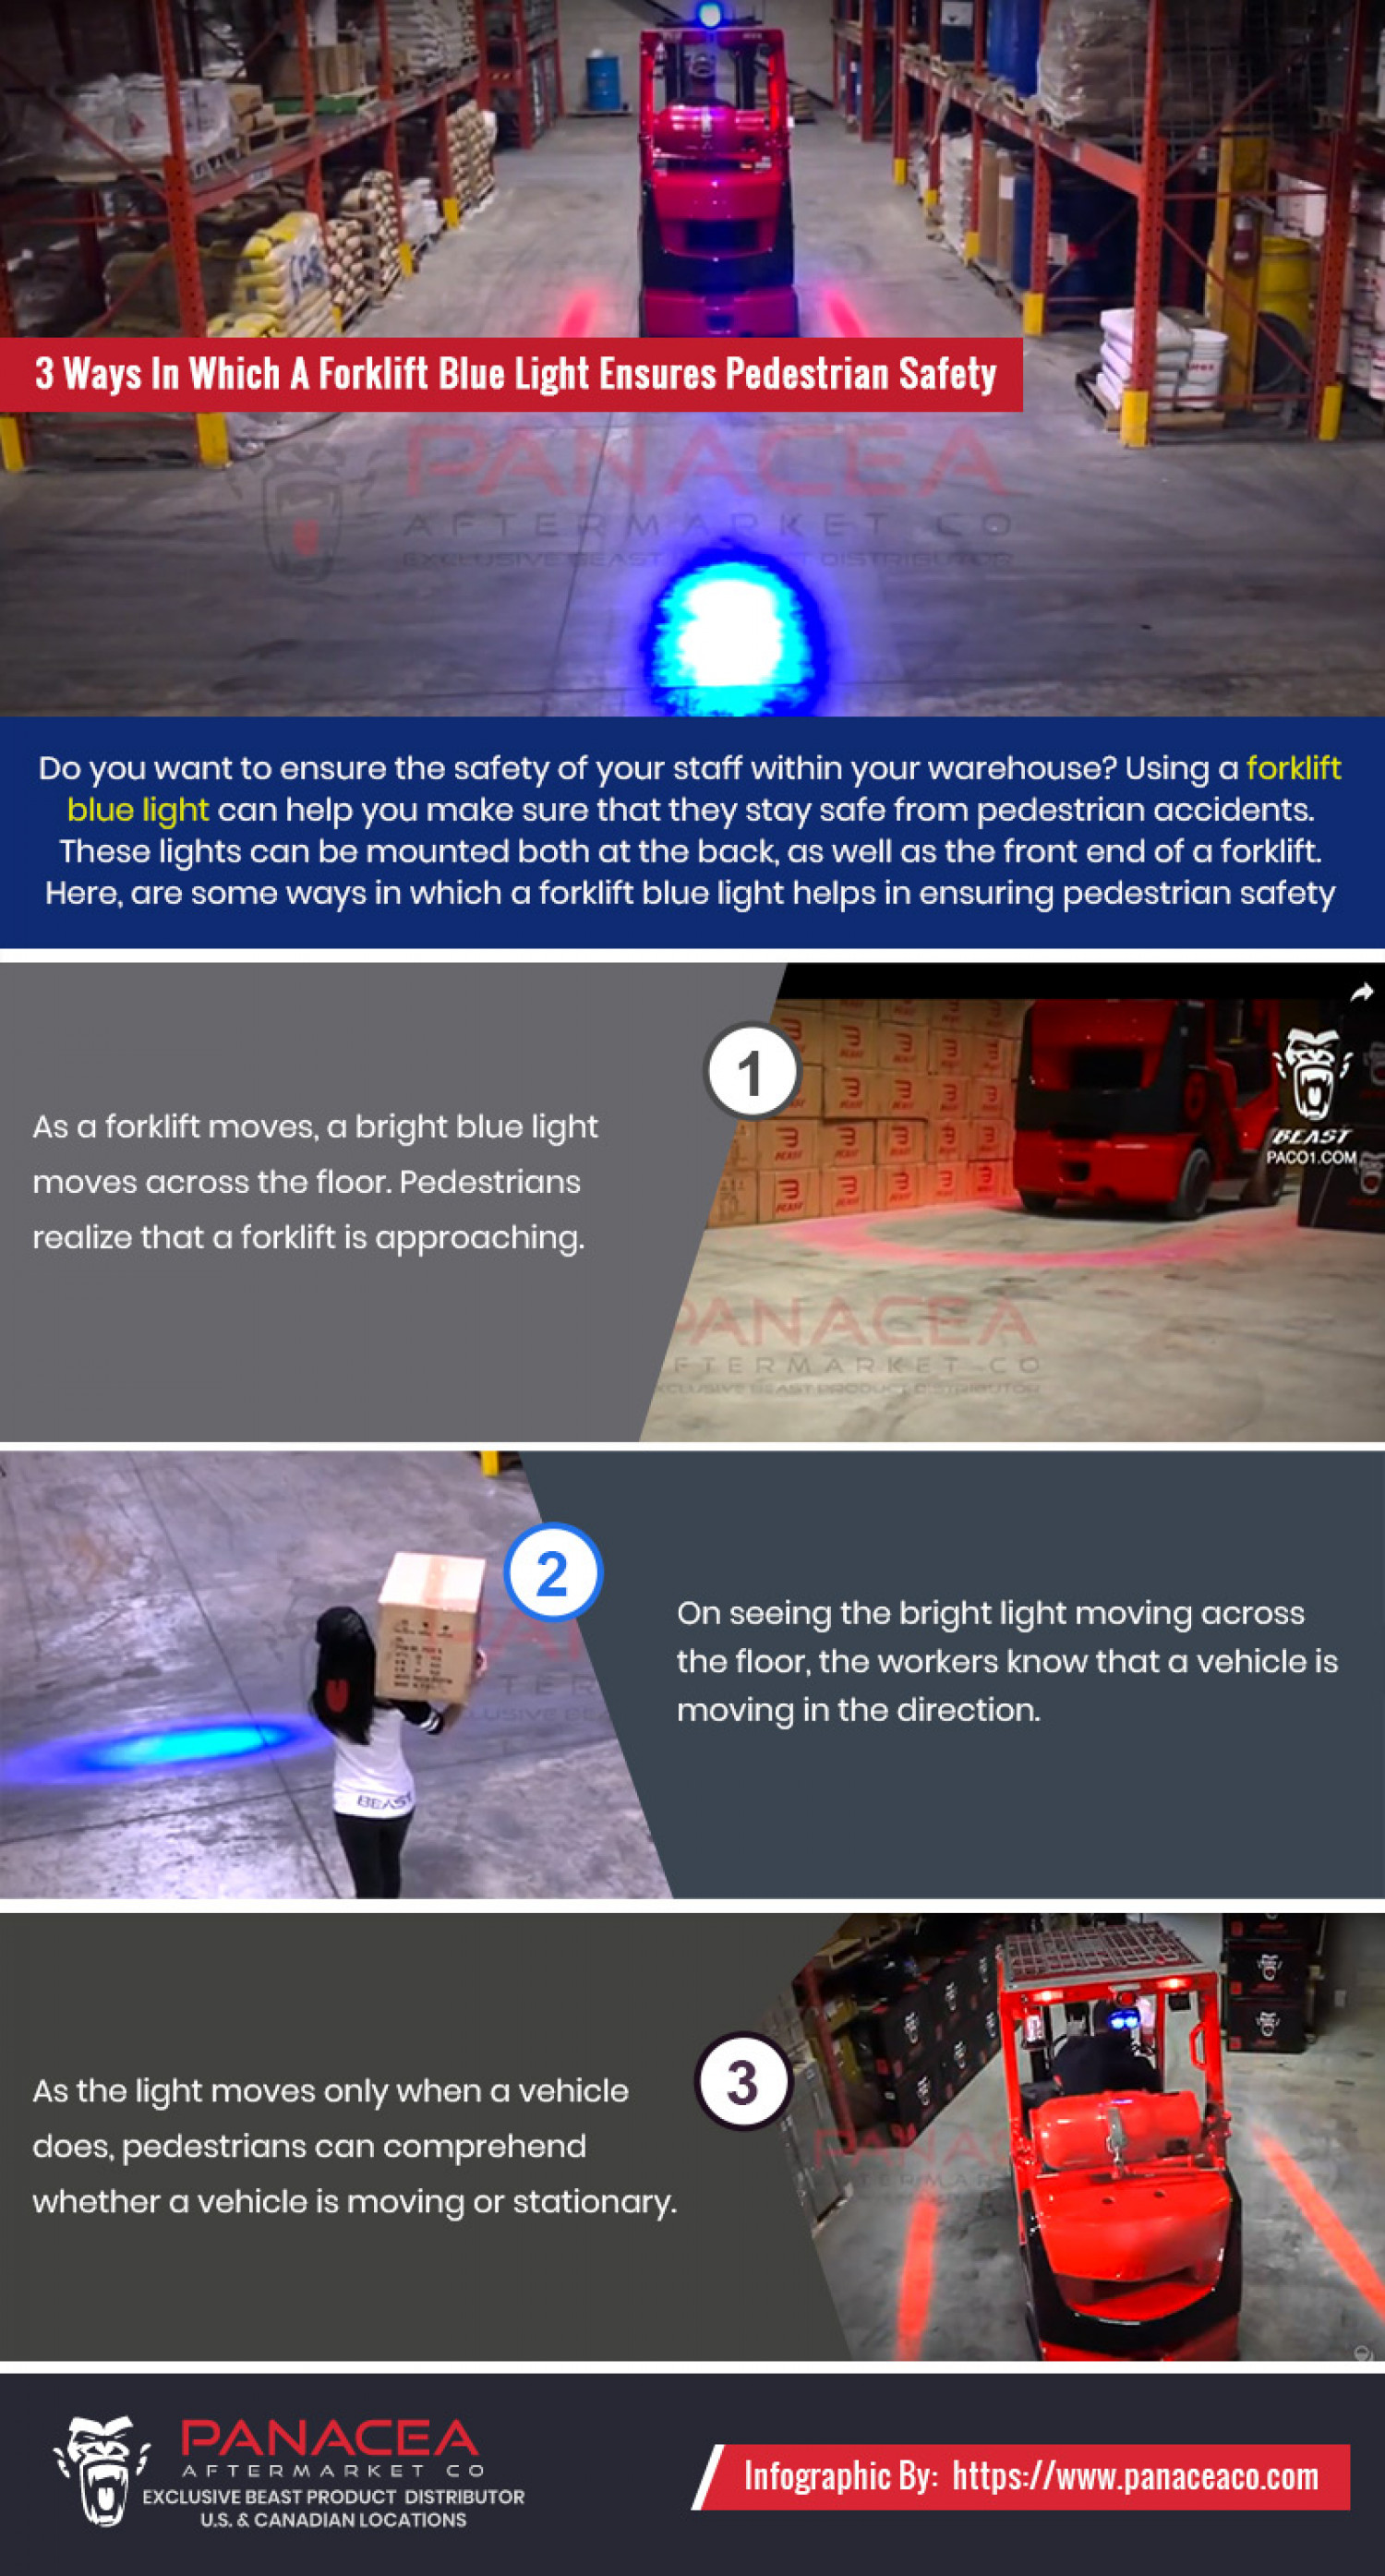 4 Ways In Which A Forklift Blue Light Ensures Pedestrian Safety Infographic